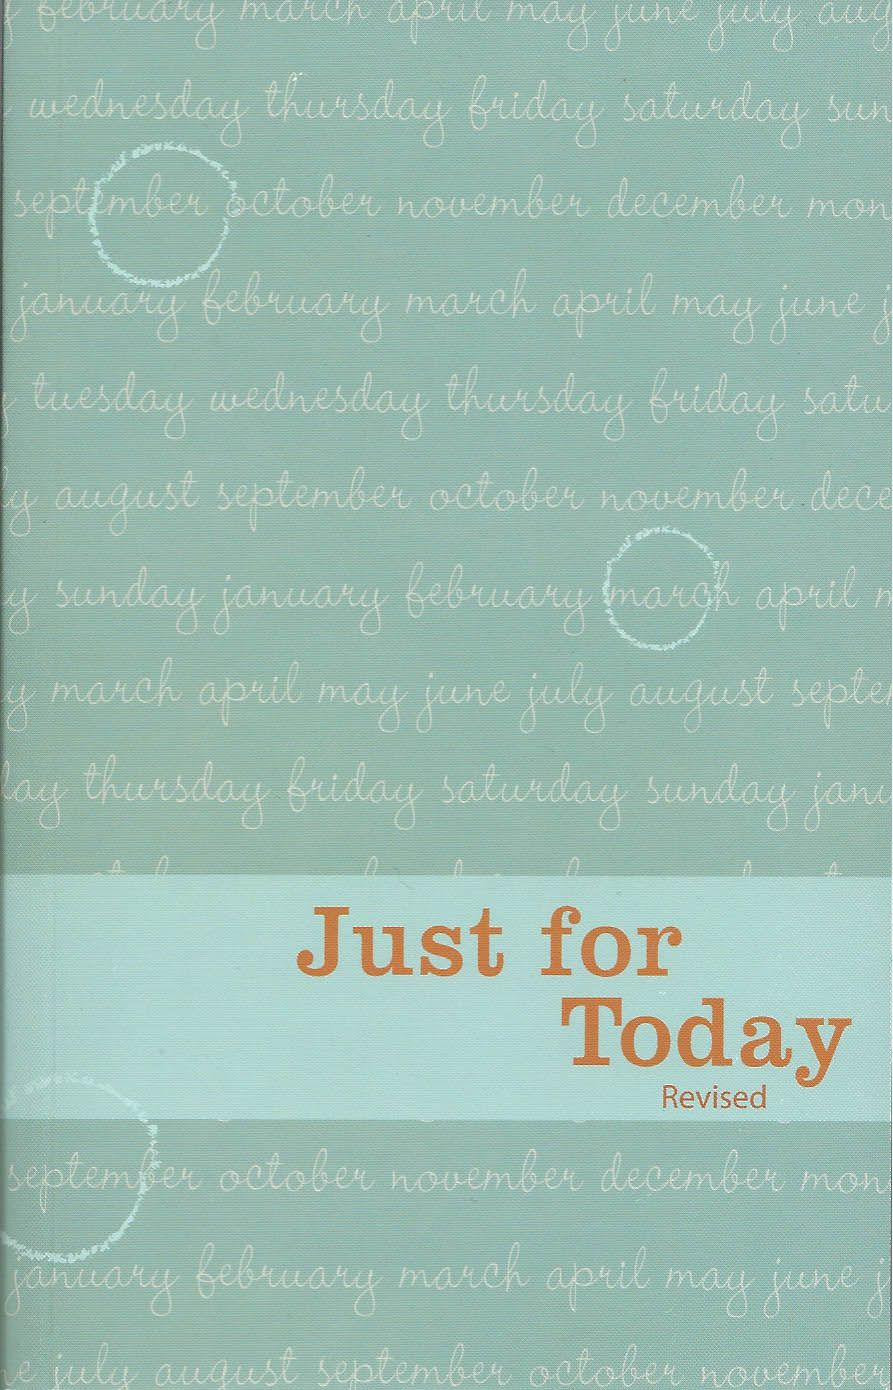 Just For Today | Just for today, Daily meditation, Words